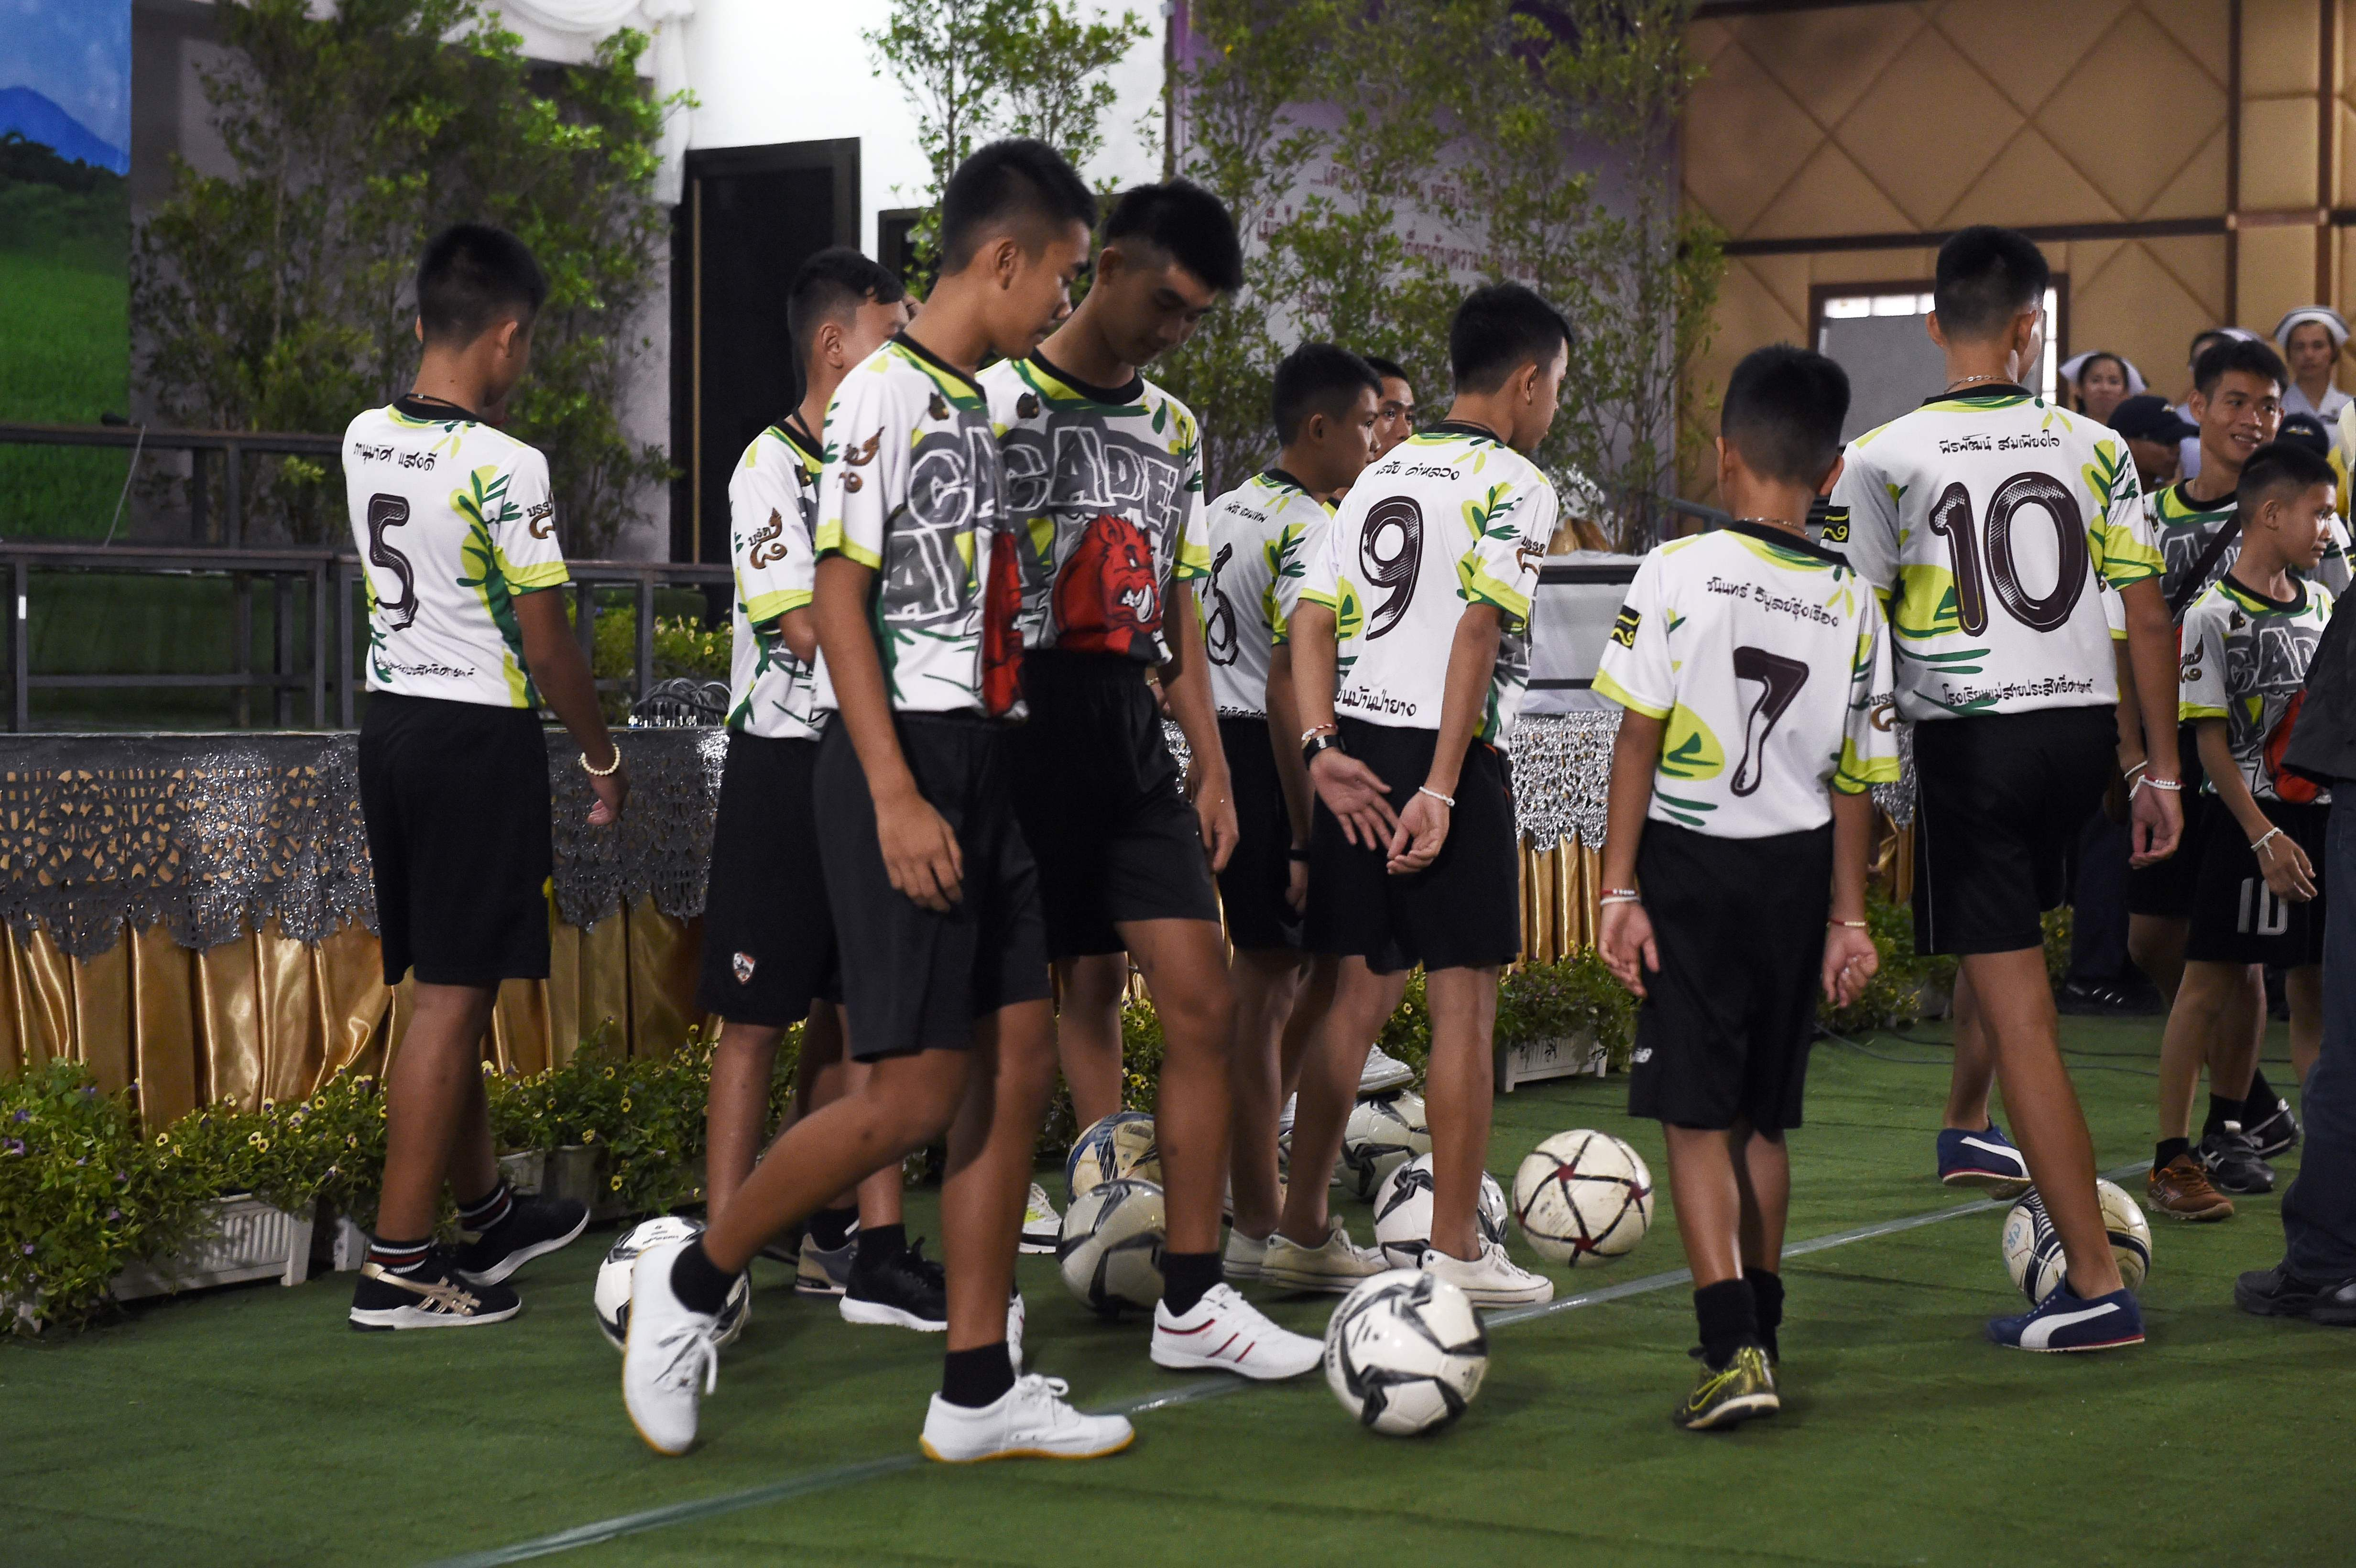 Thai Cave Rescue Soccer Players And Coach Speak Publicly For First